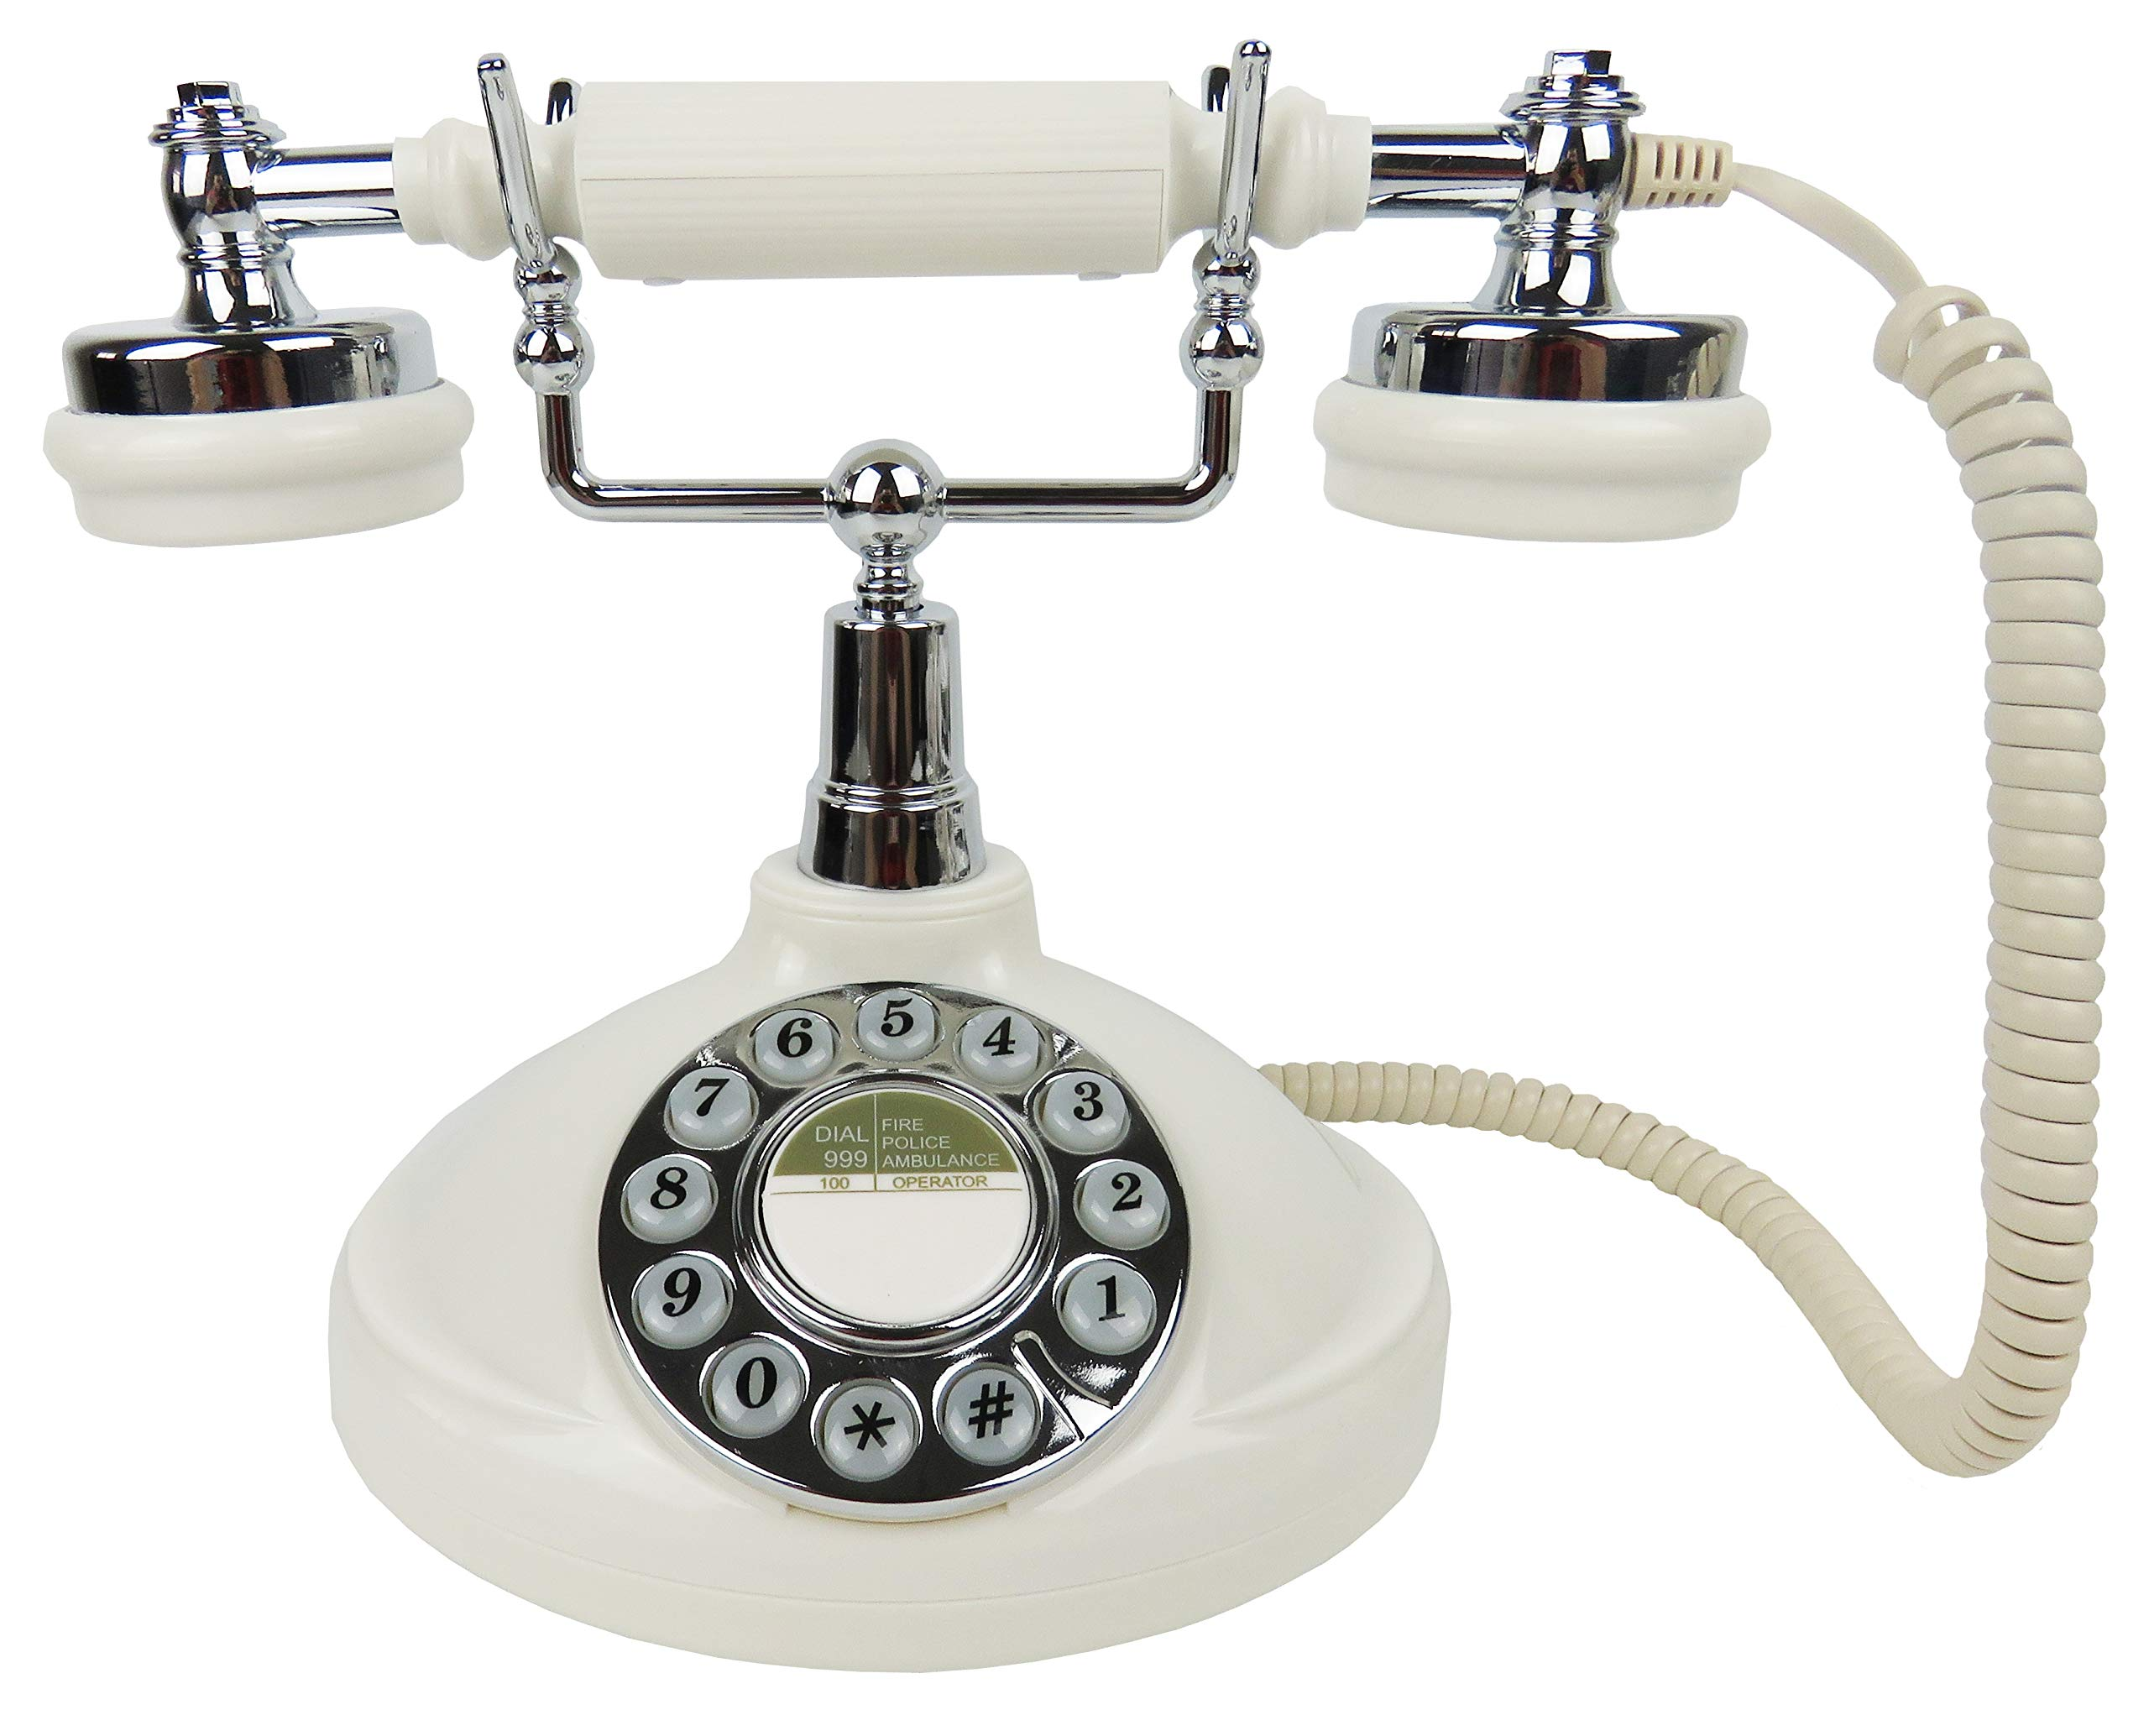 Antique Telephone-Classic Desk Phone with Push Botton for Home and office-1920 White by Home Creative